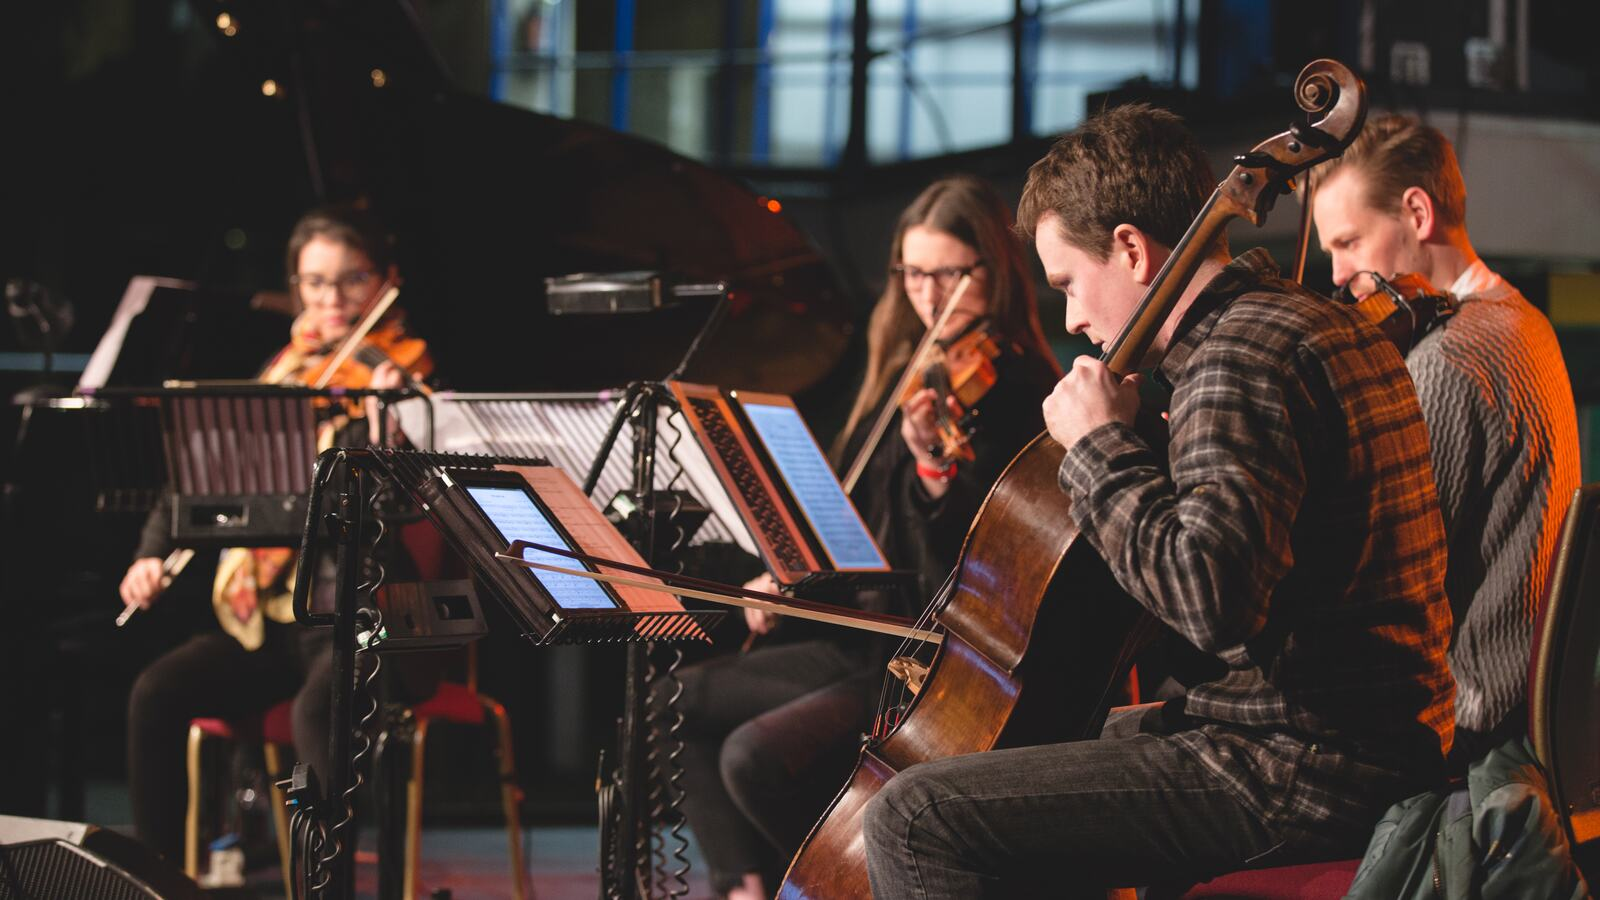 London Contemporary Orchestra performance